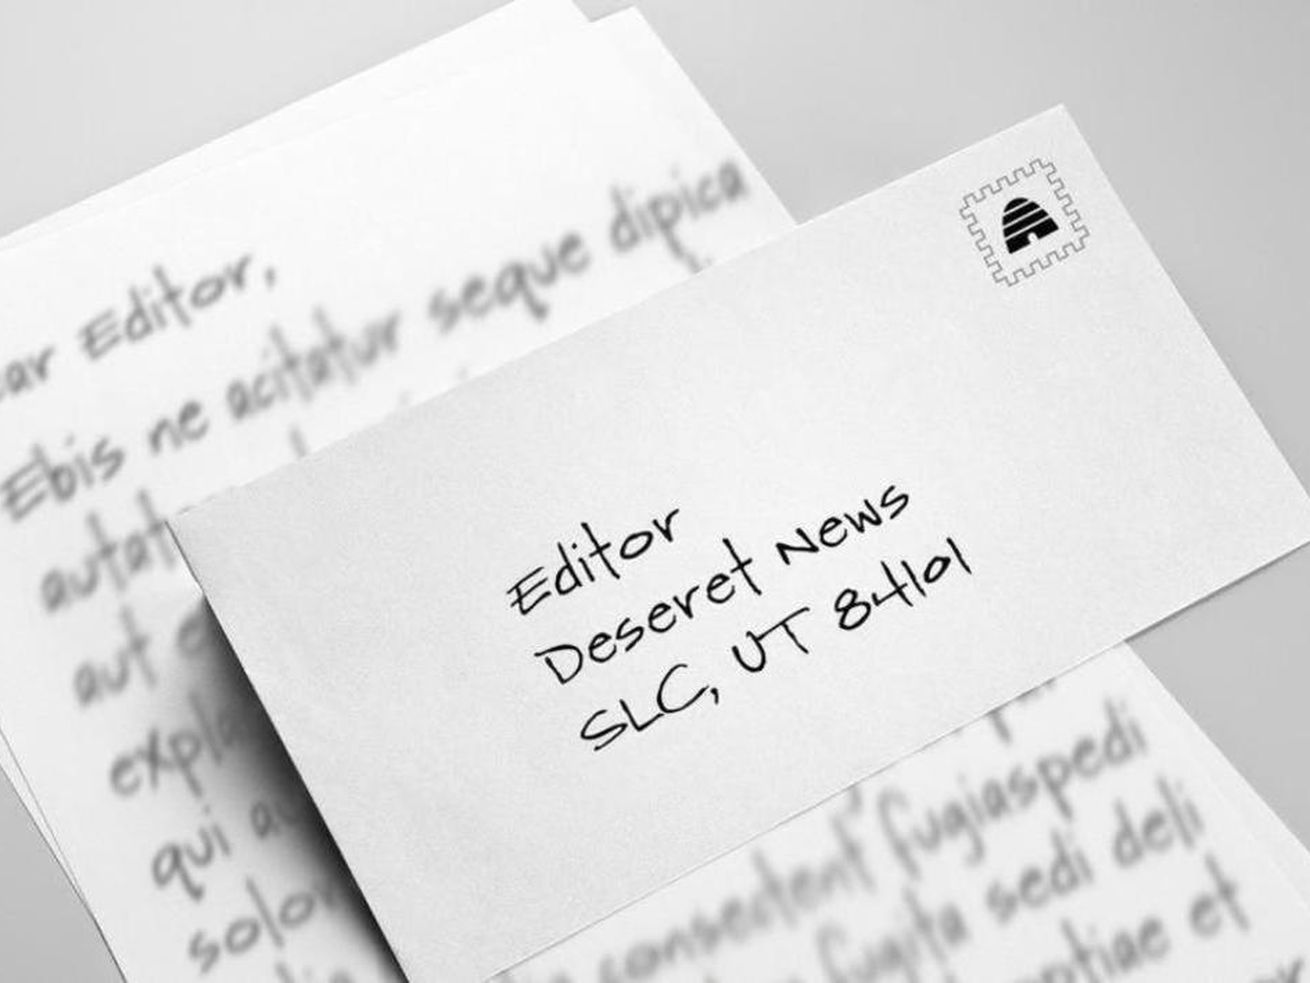 Letter: An uplifting read